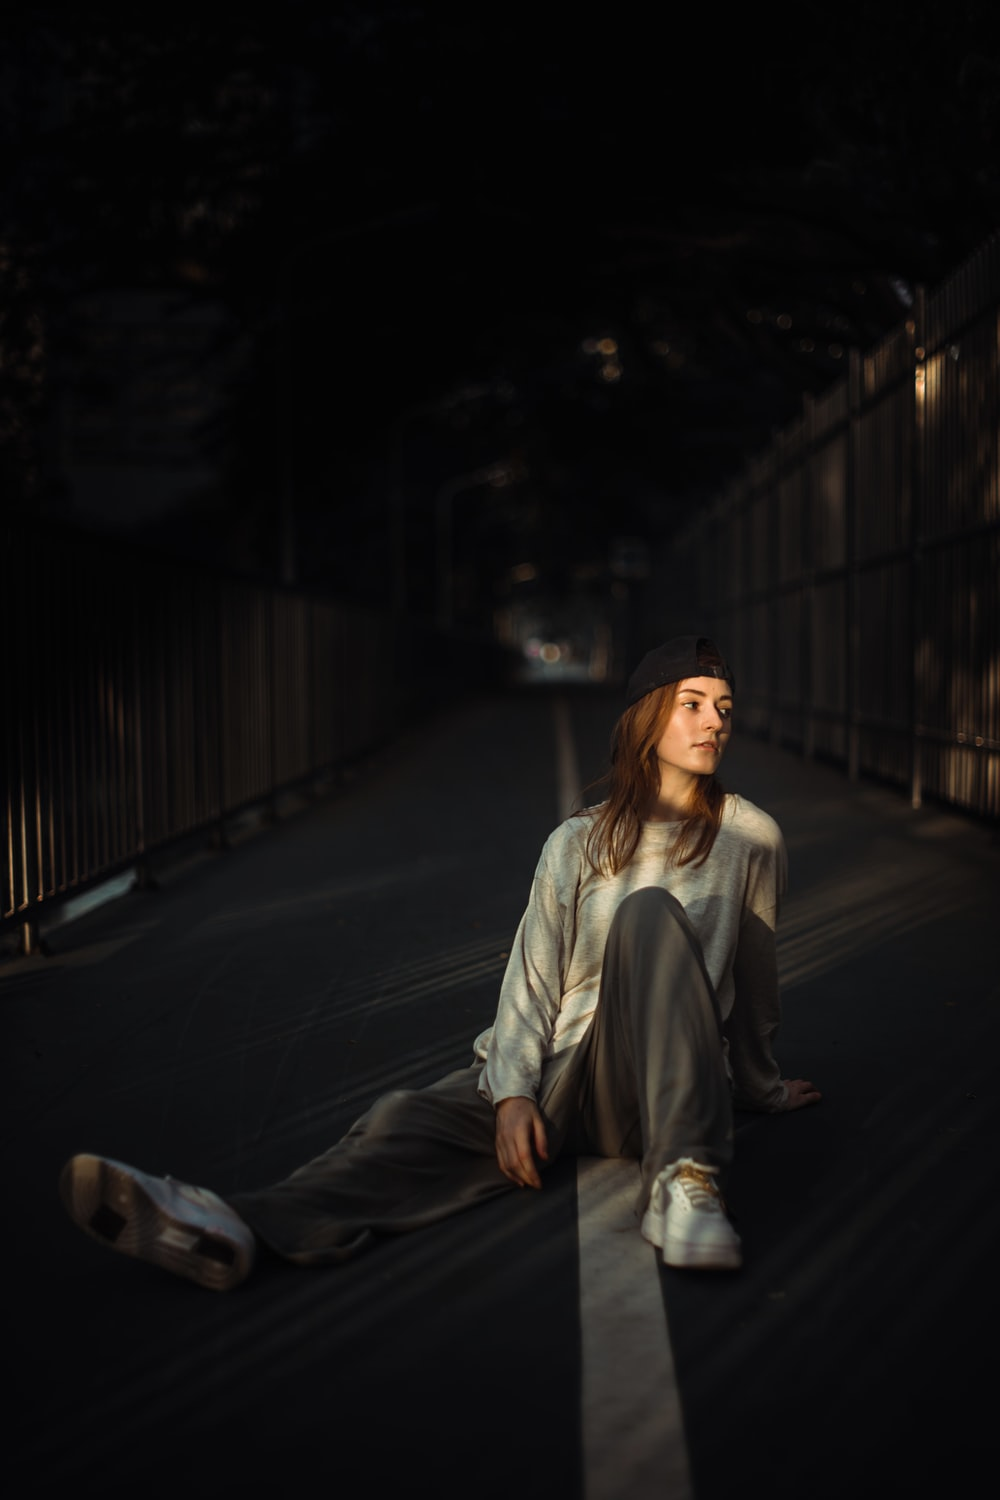 woman in gray coat sitting on the sidewalk during night time